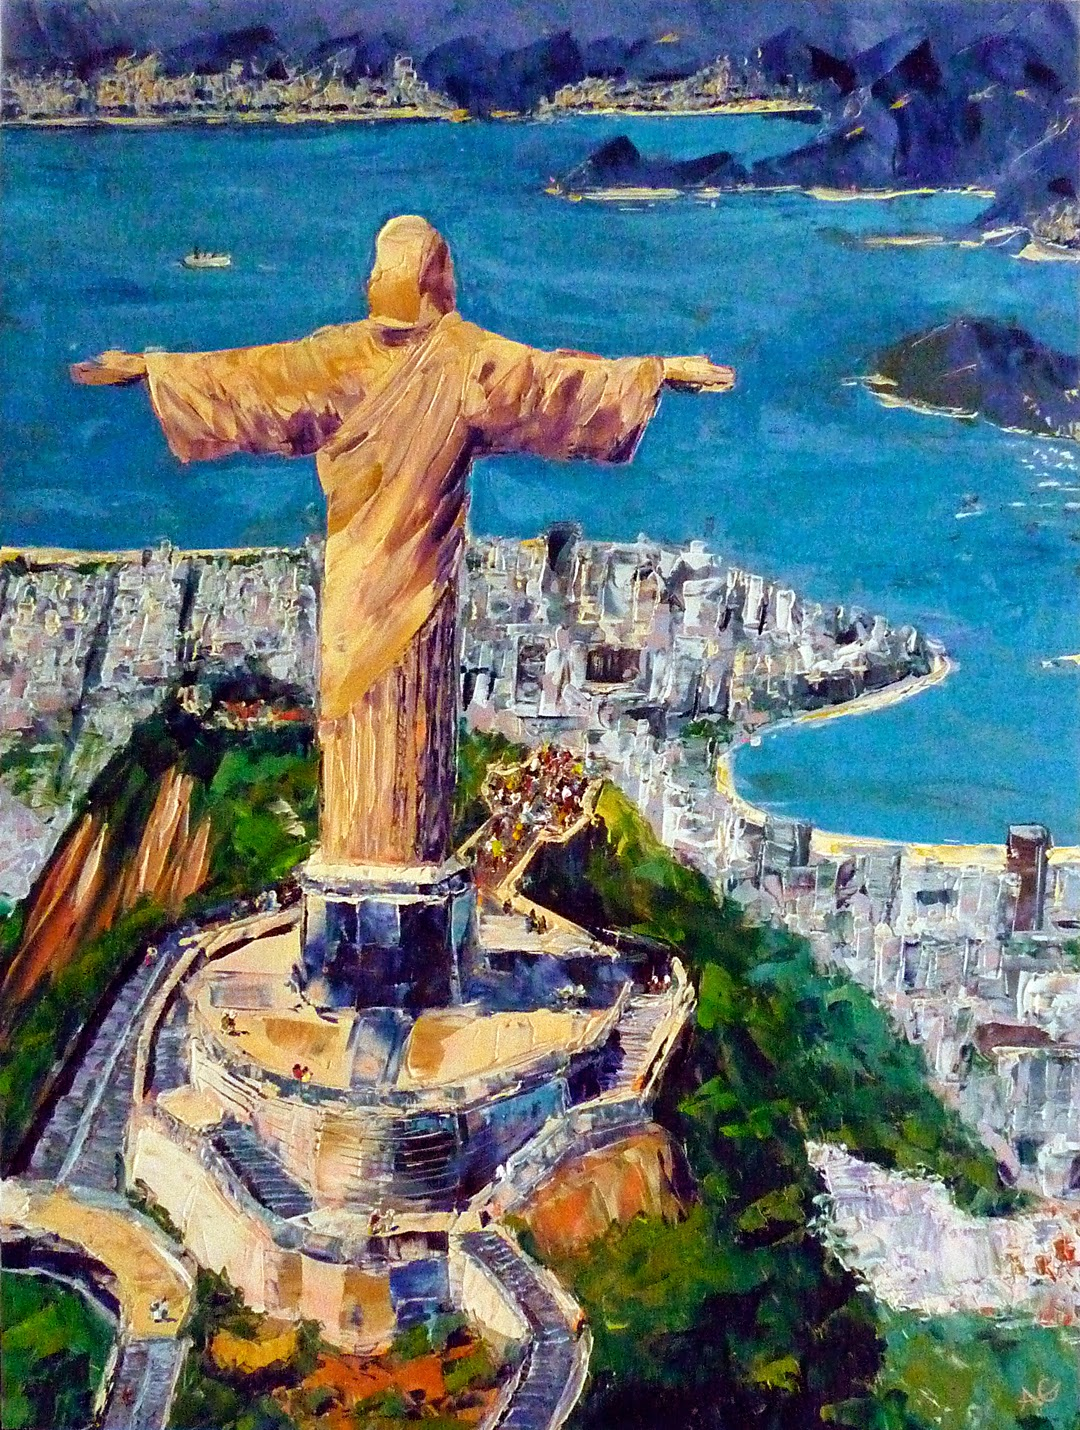 Ann gorbett palette knife painting two paintings become one - Rio art wohnwand ...